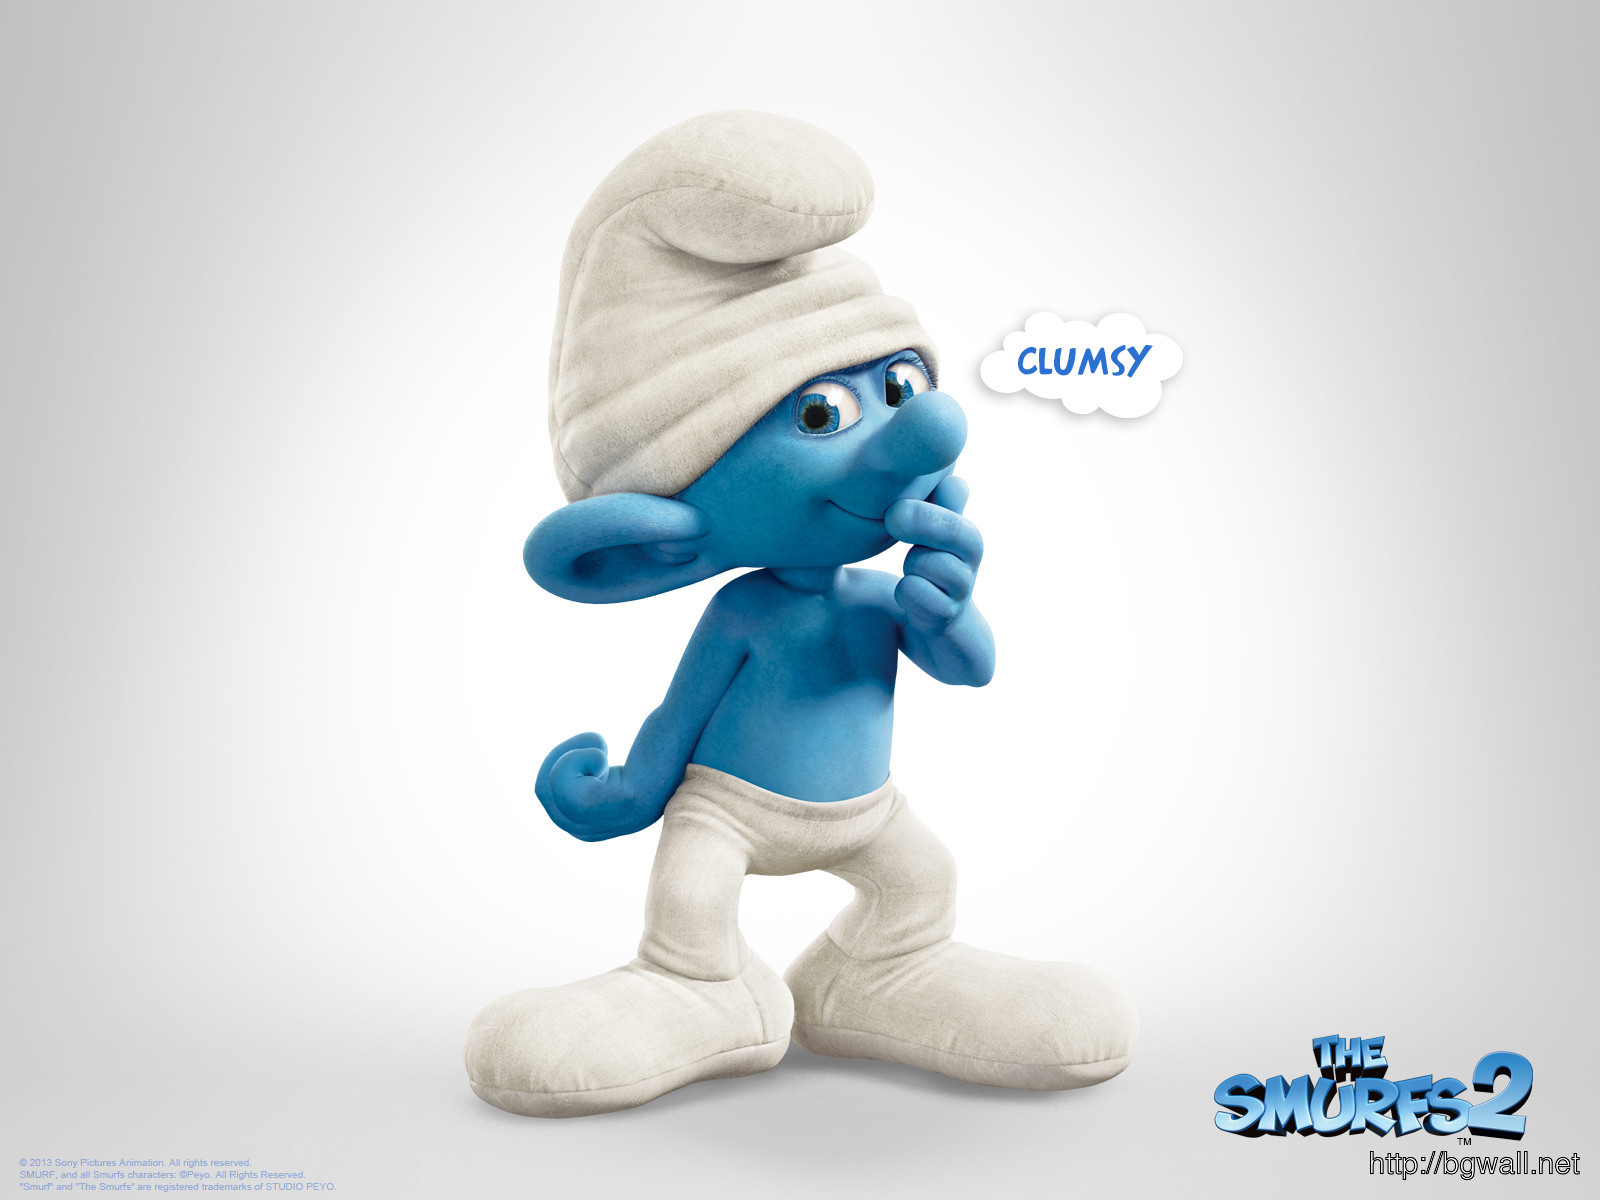 Anton Yelchin Clumsy In The Smurfs 2 Wallpaper Full Size